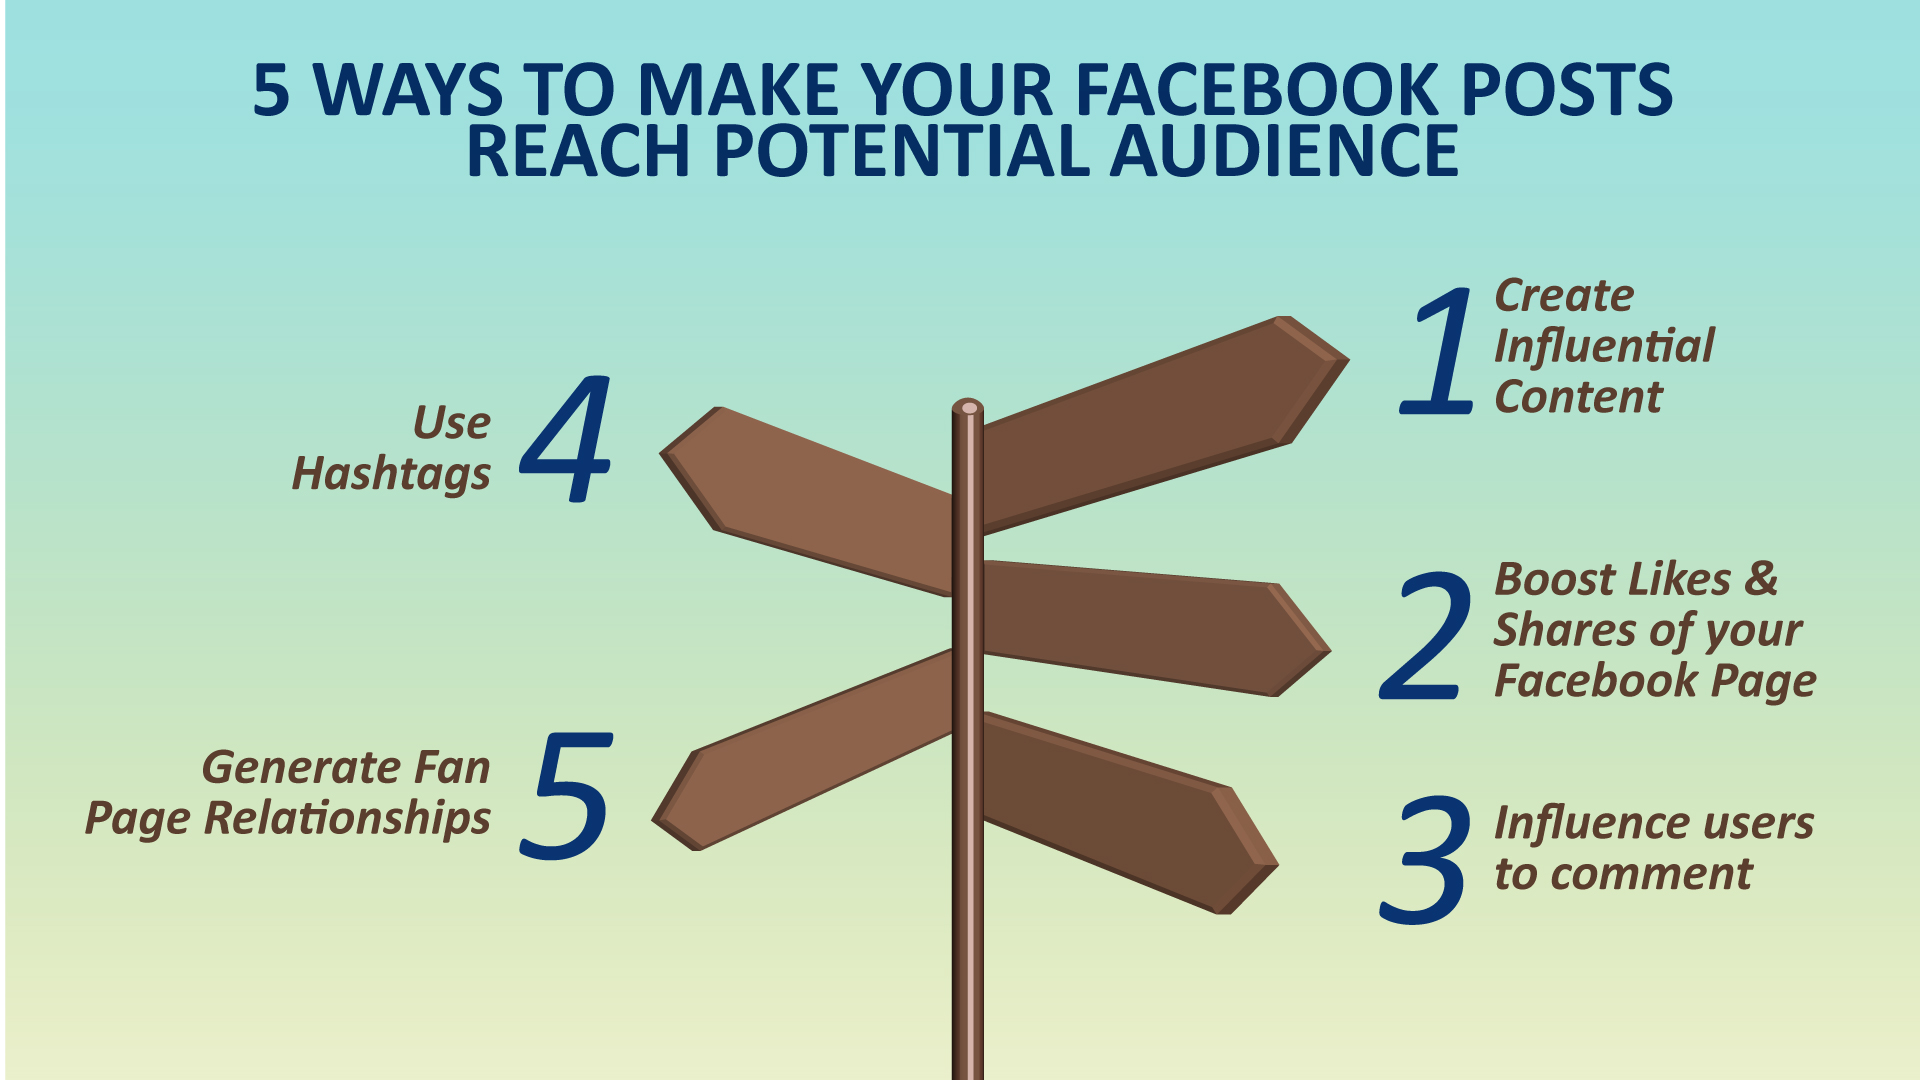 5 Ways To Make Your Facebook Posts Reach Potential Audience